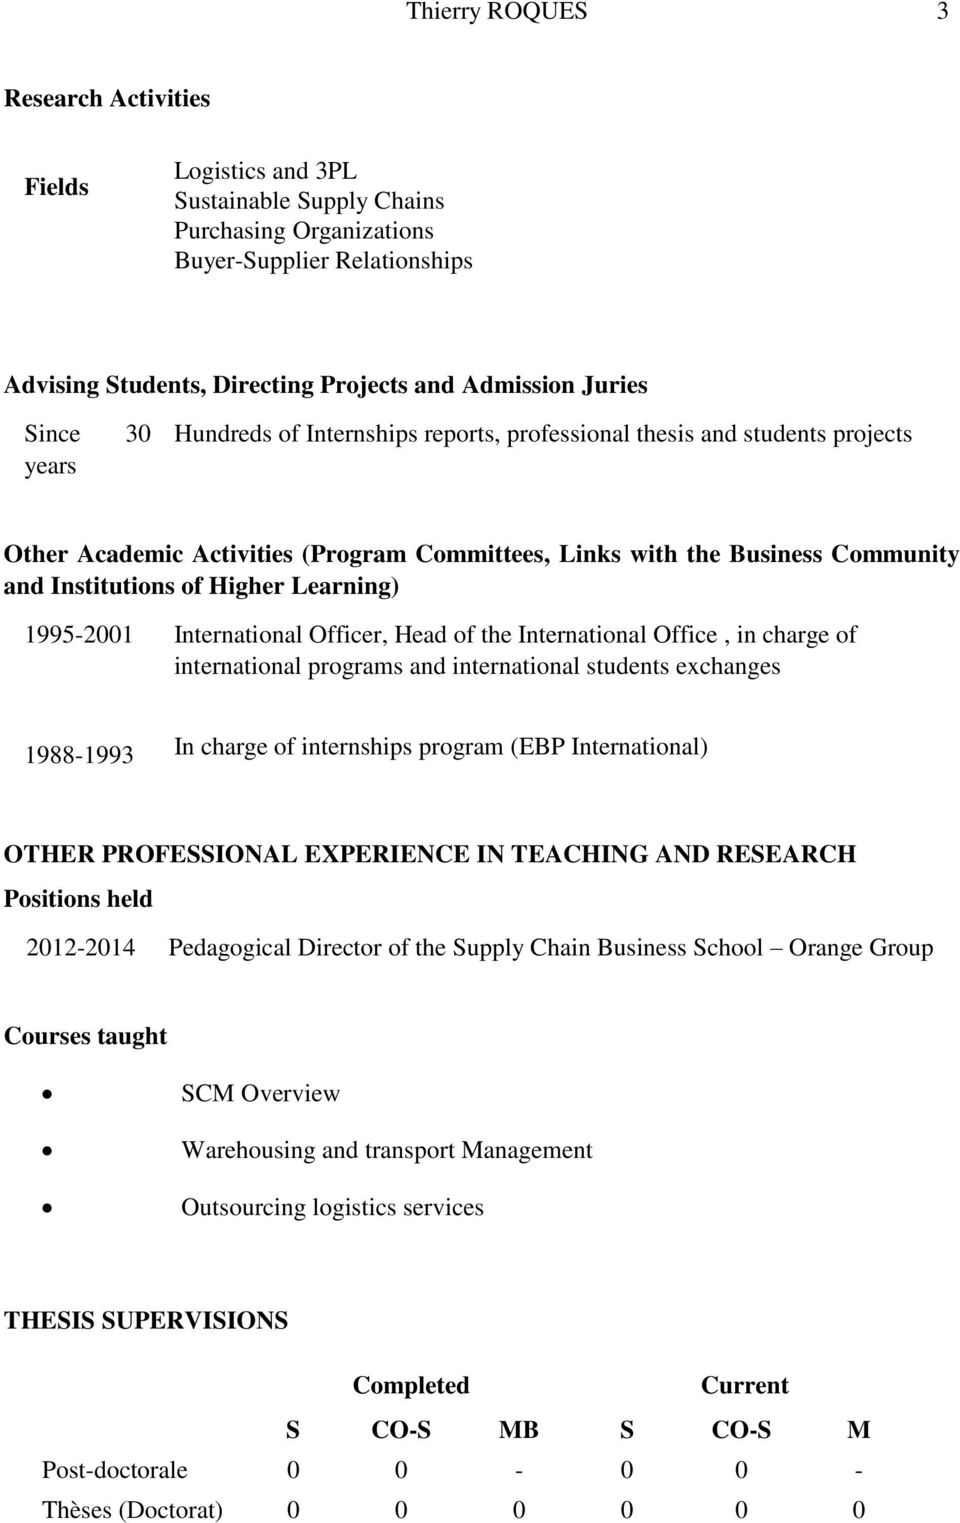 Higher Learning) 1995-2001 International Officer, Head of the International Office, in charge of international programs and international students exchanges 1988-1993 In charge of internships program